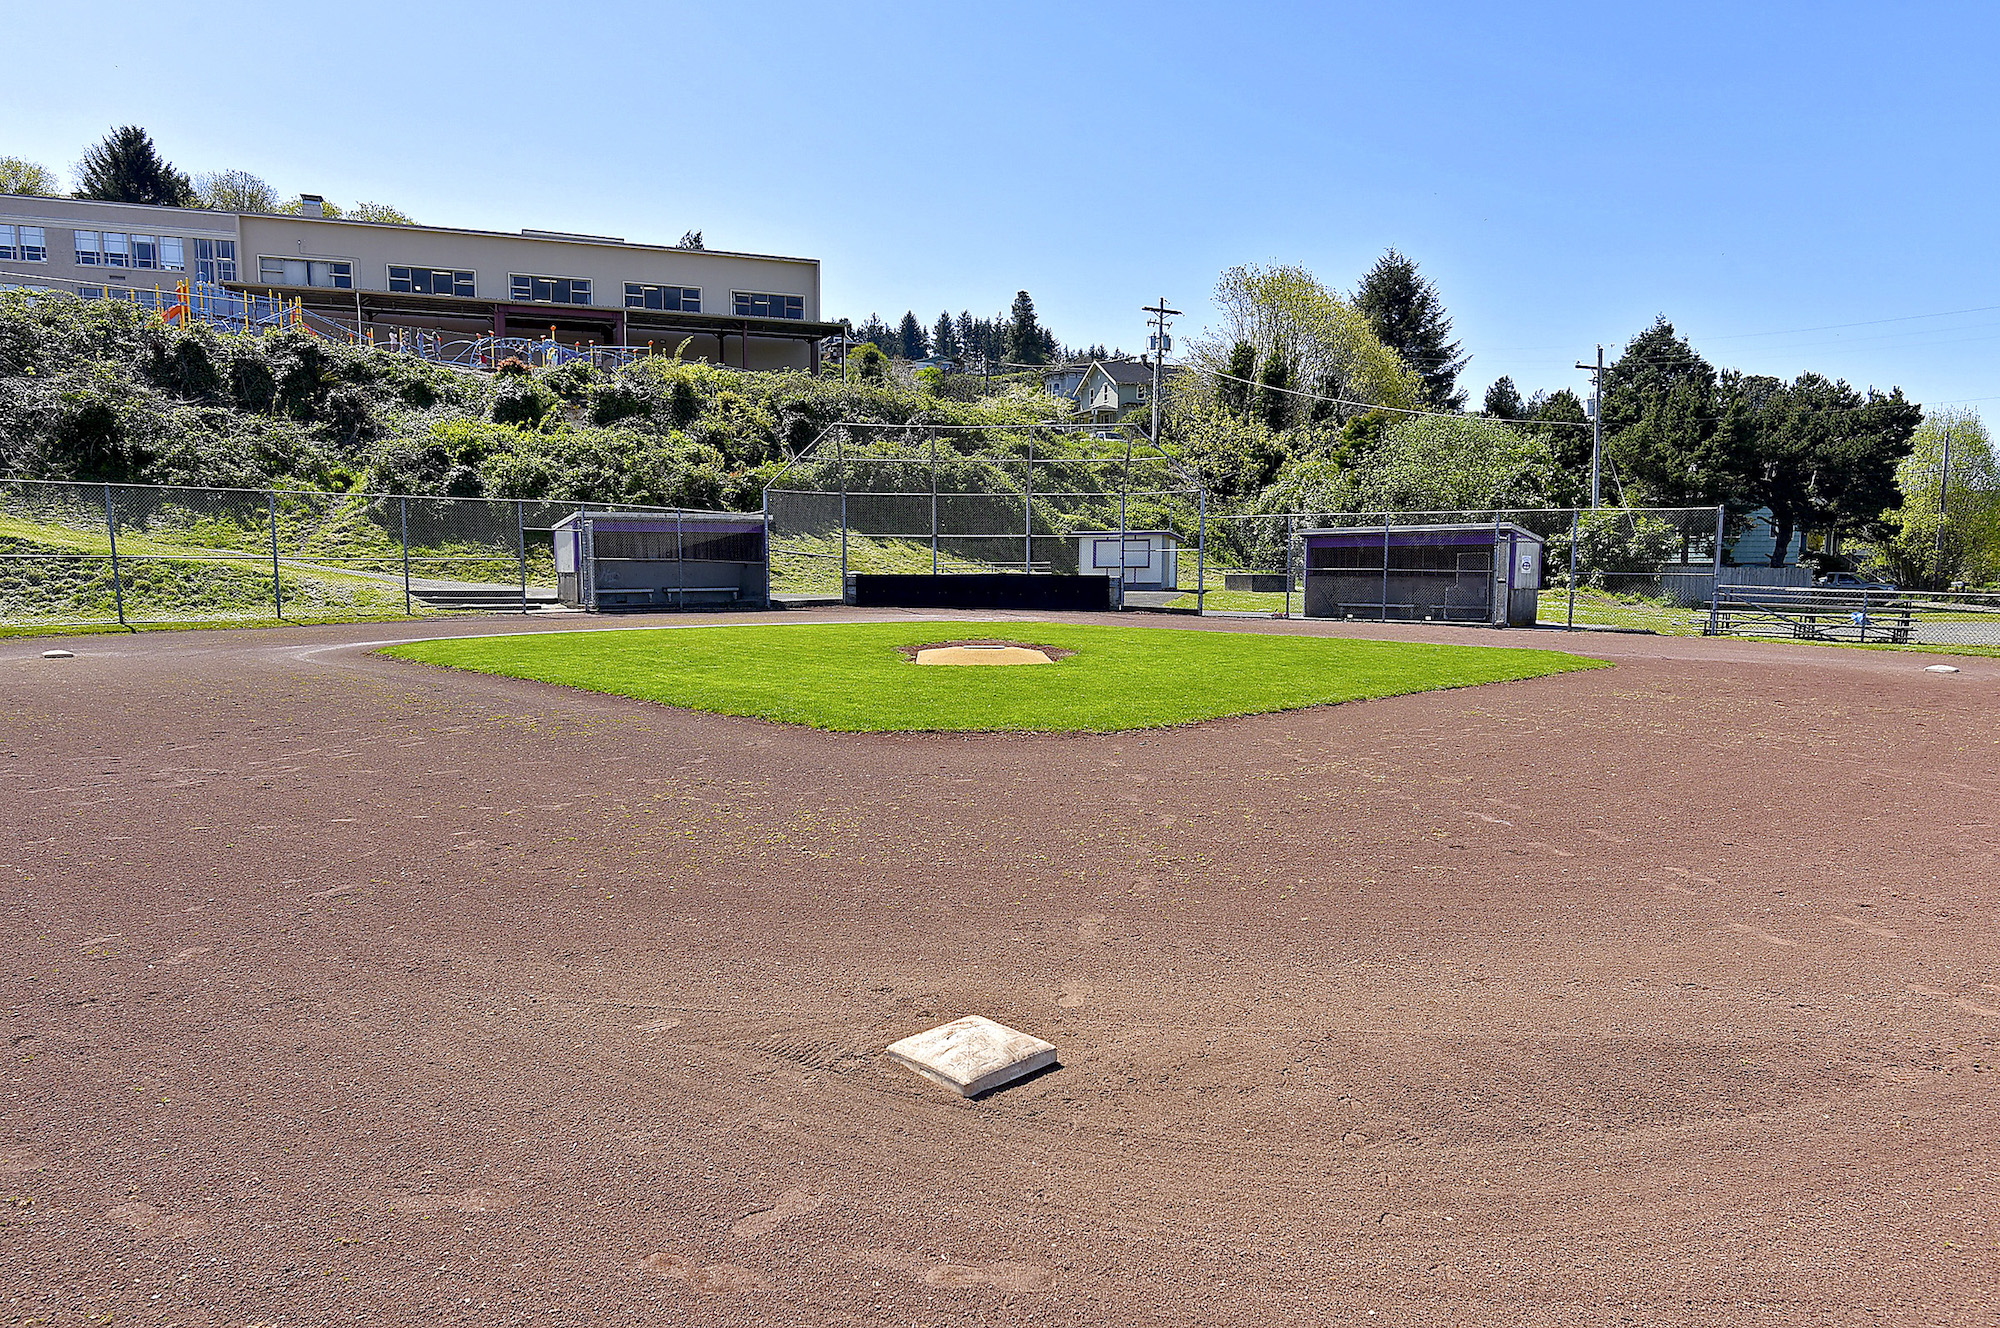 The baseball field in Astoria where a KKK rally was once held